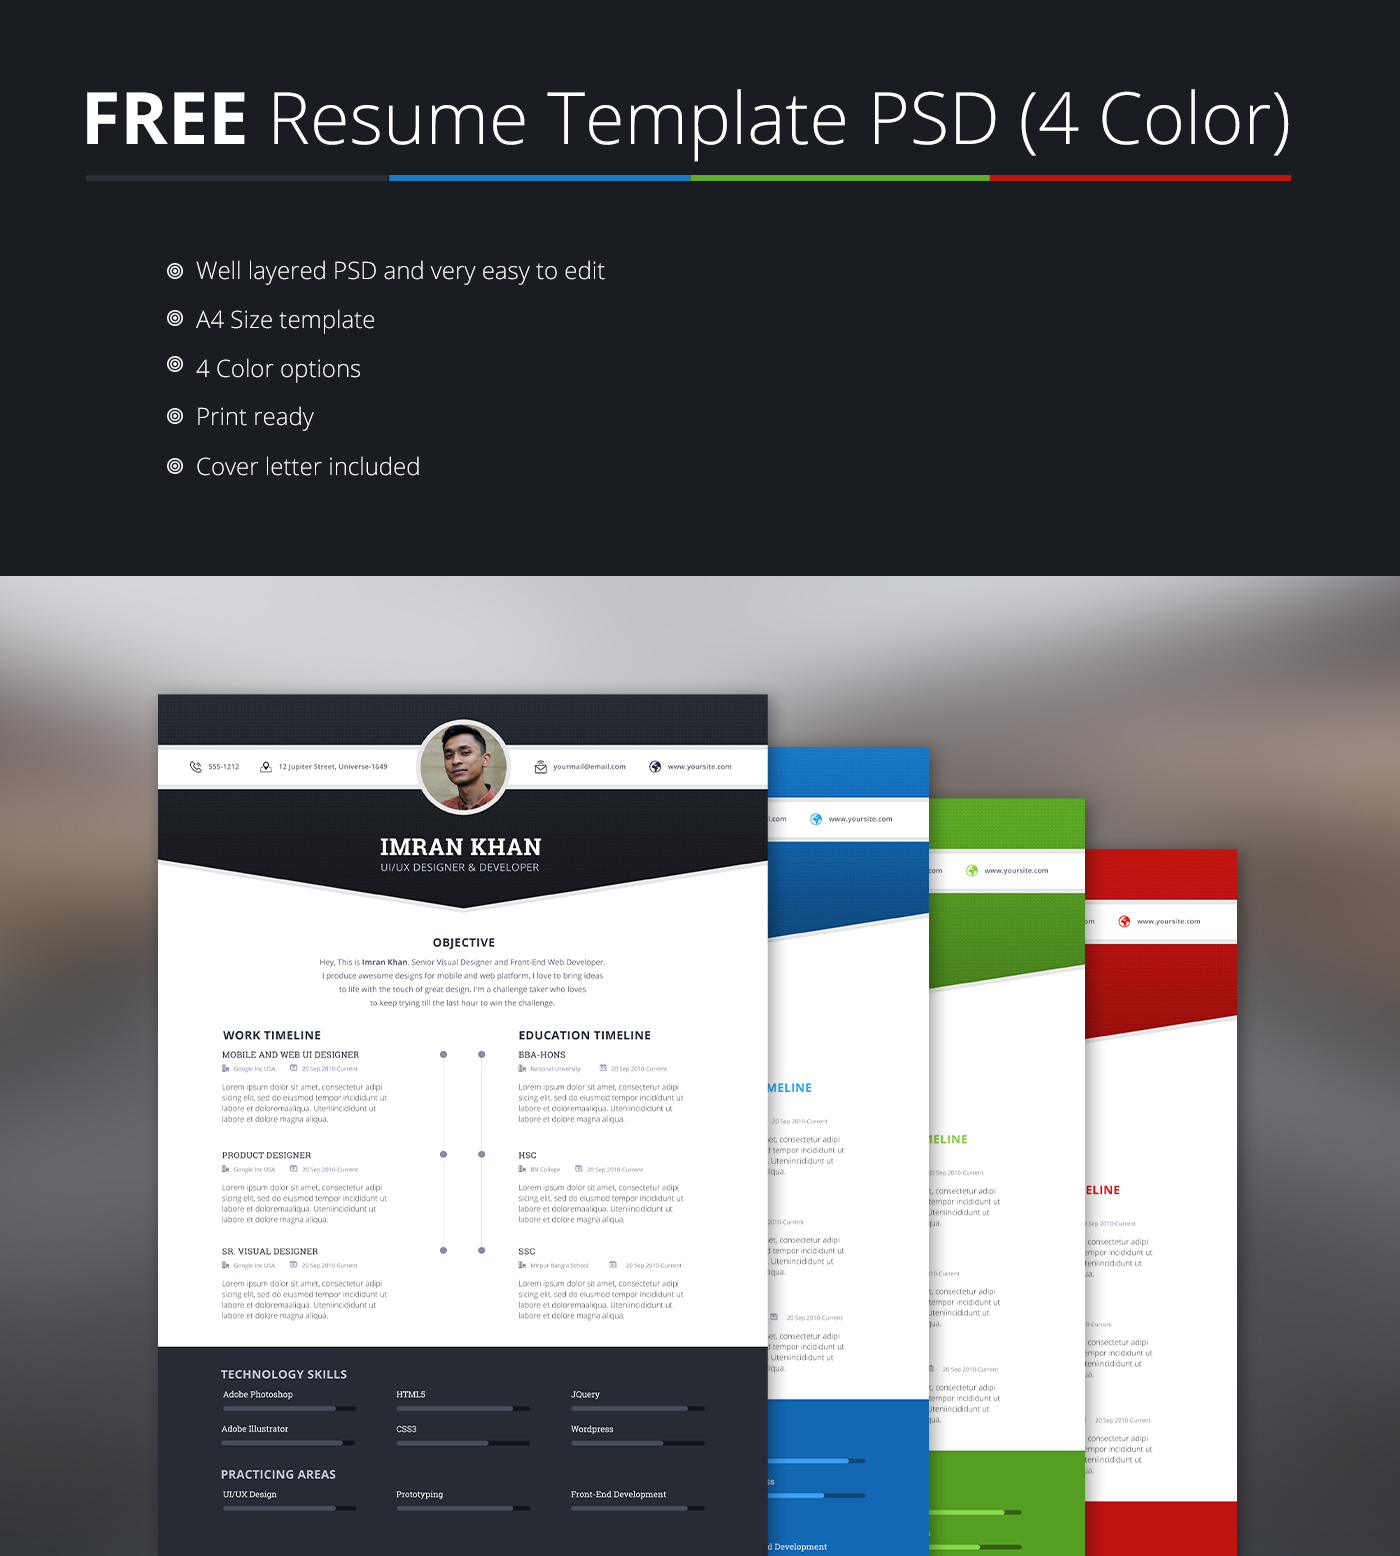 Free Resume Download Template Free Resume Template Psd 4 Colors On Behance